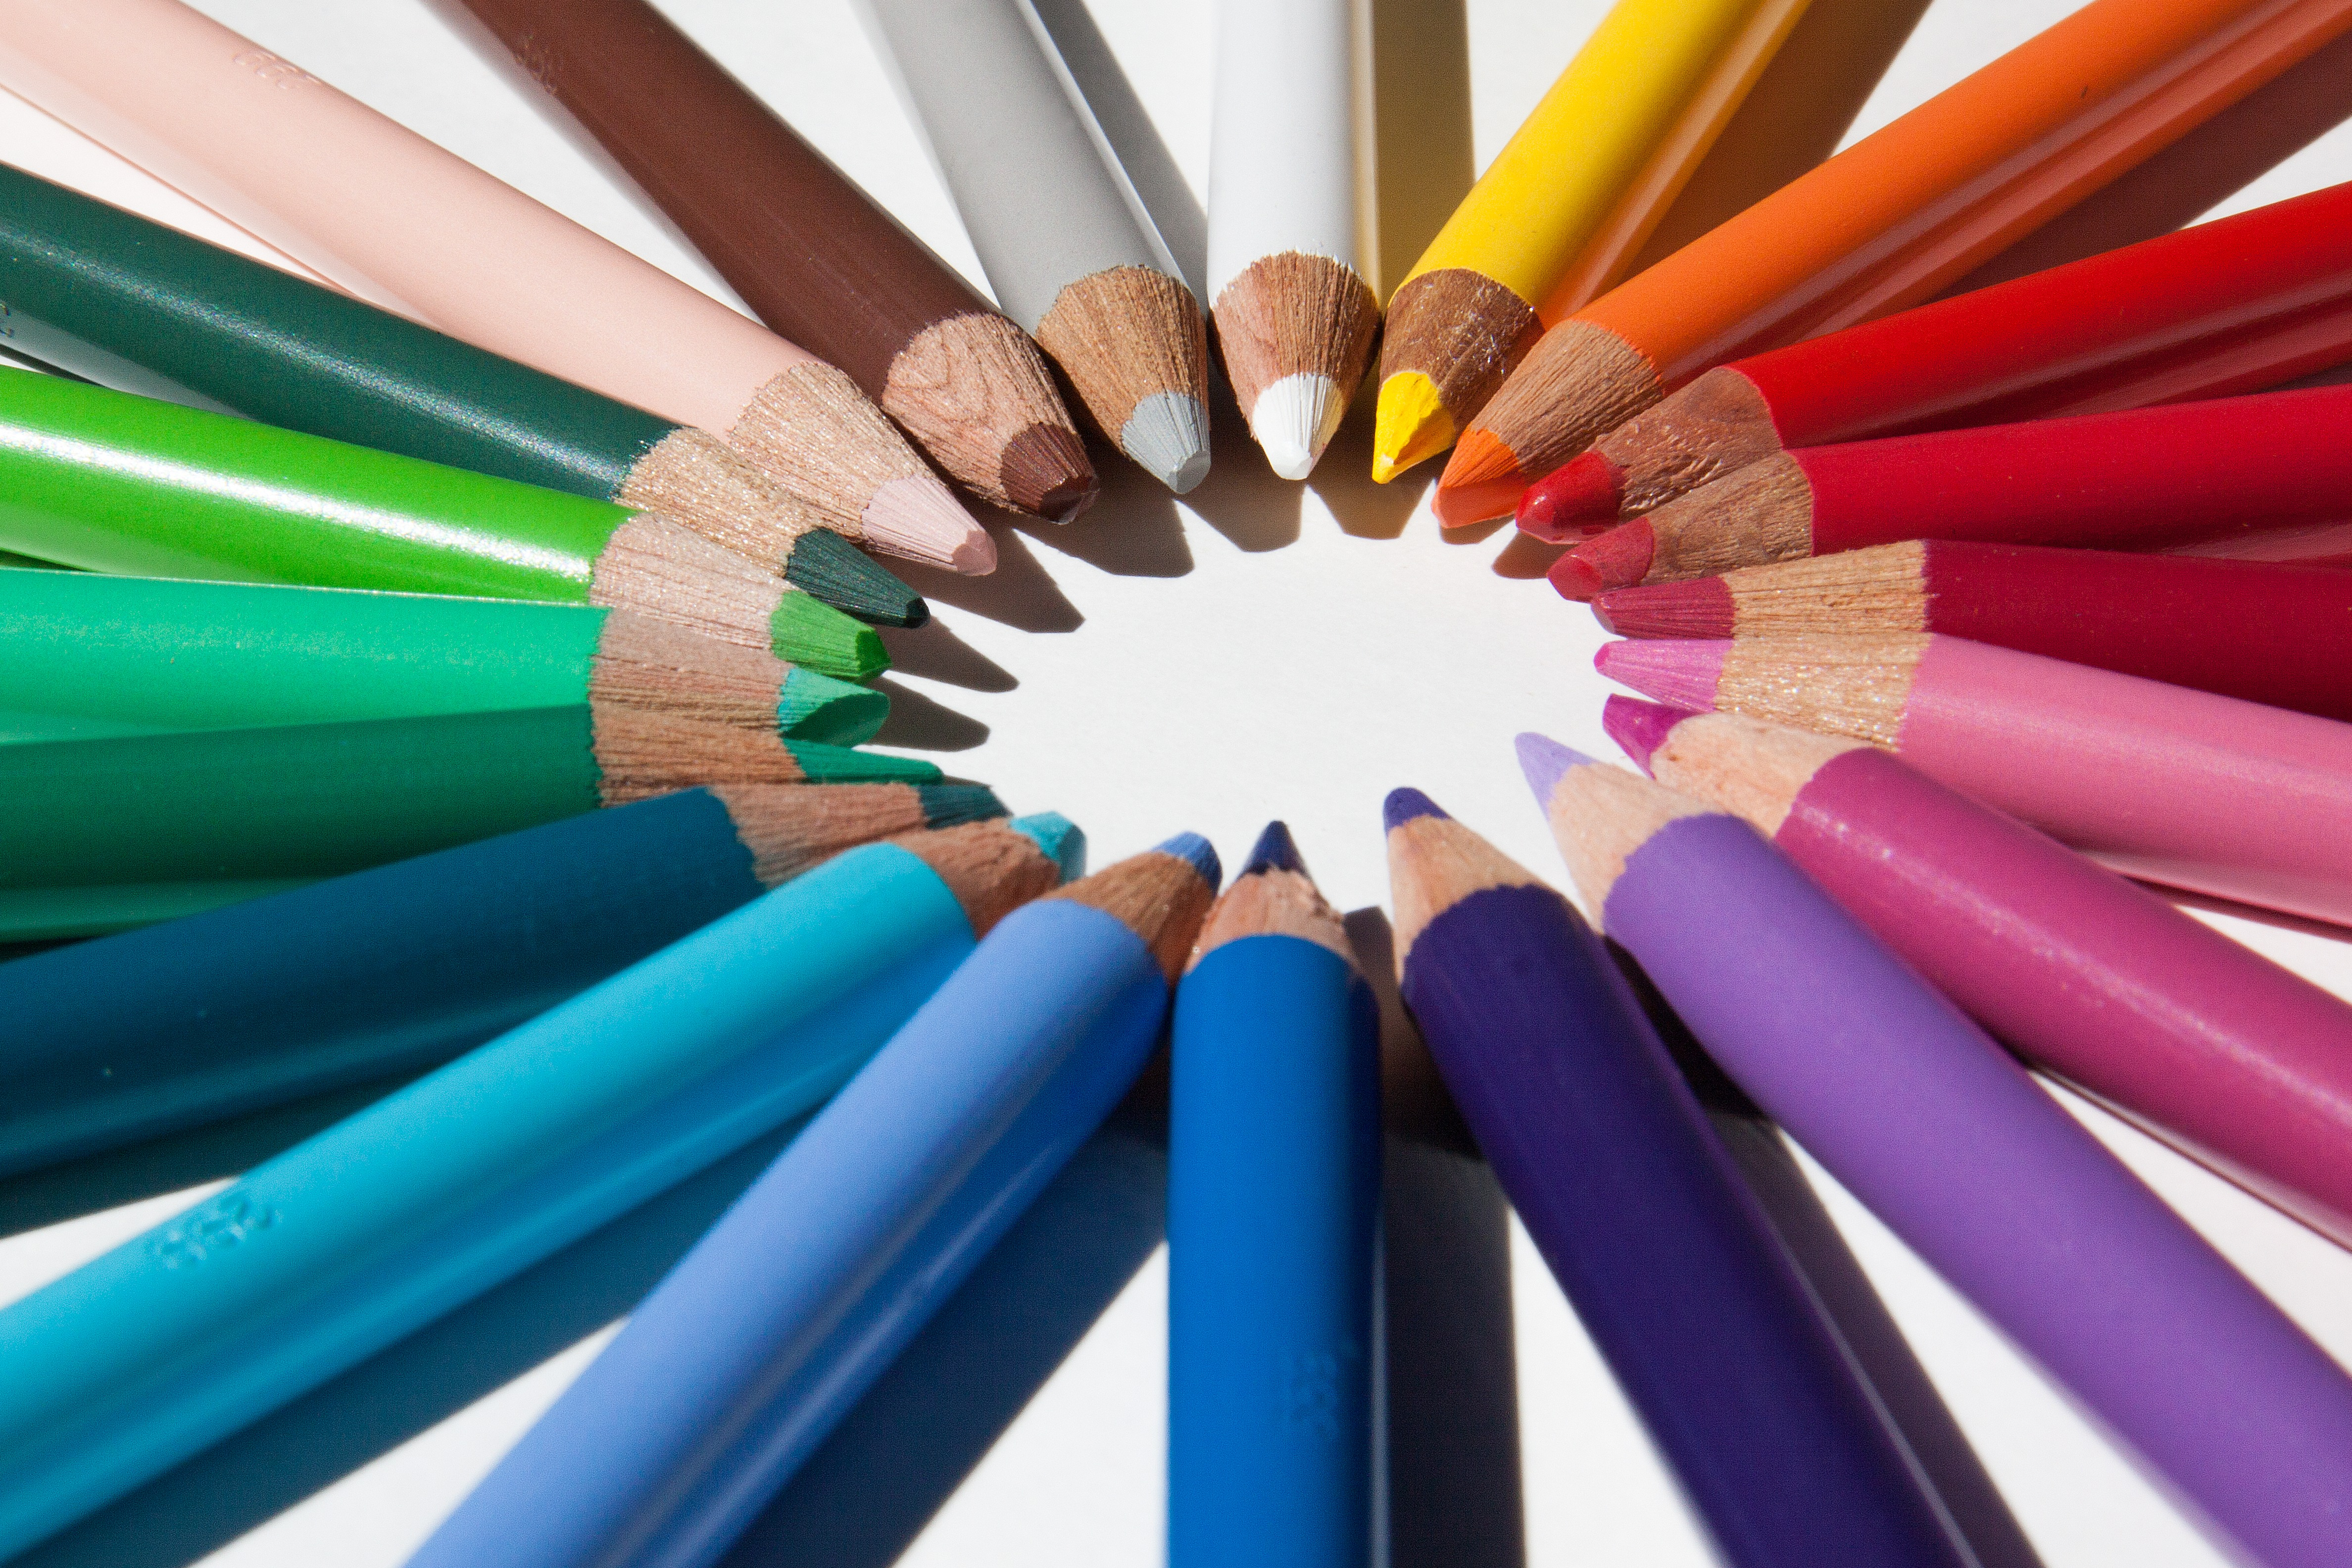 The Principles of Design: Color Harmony